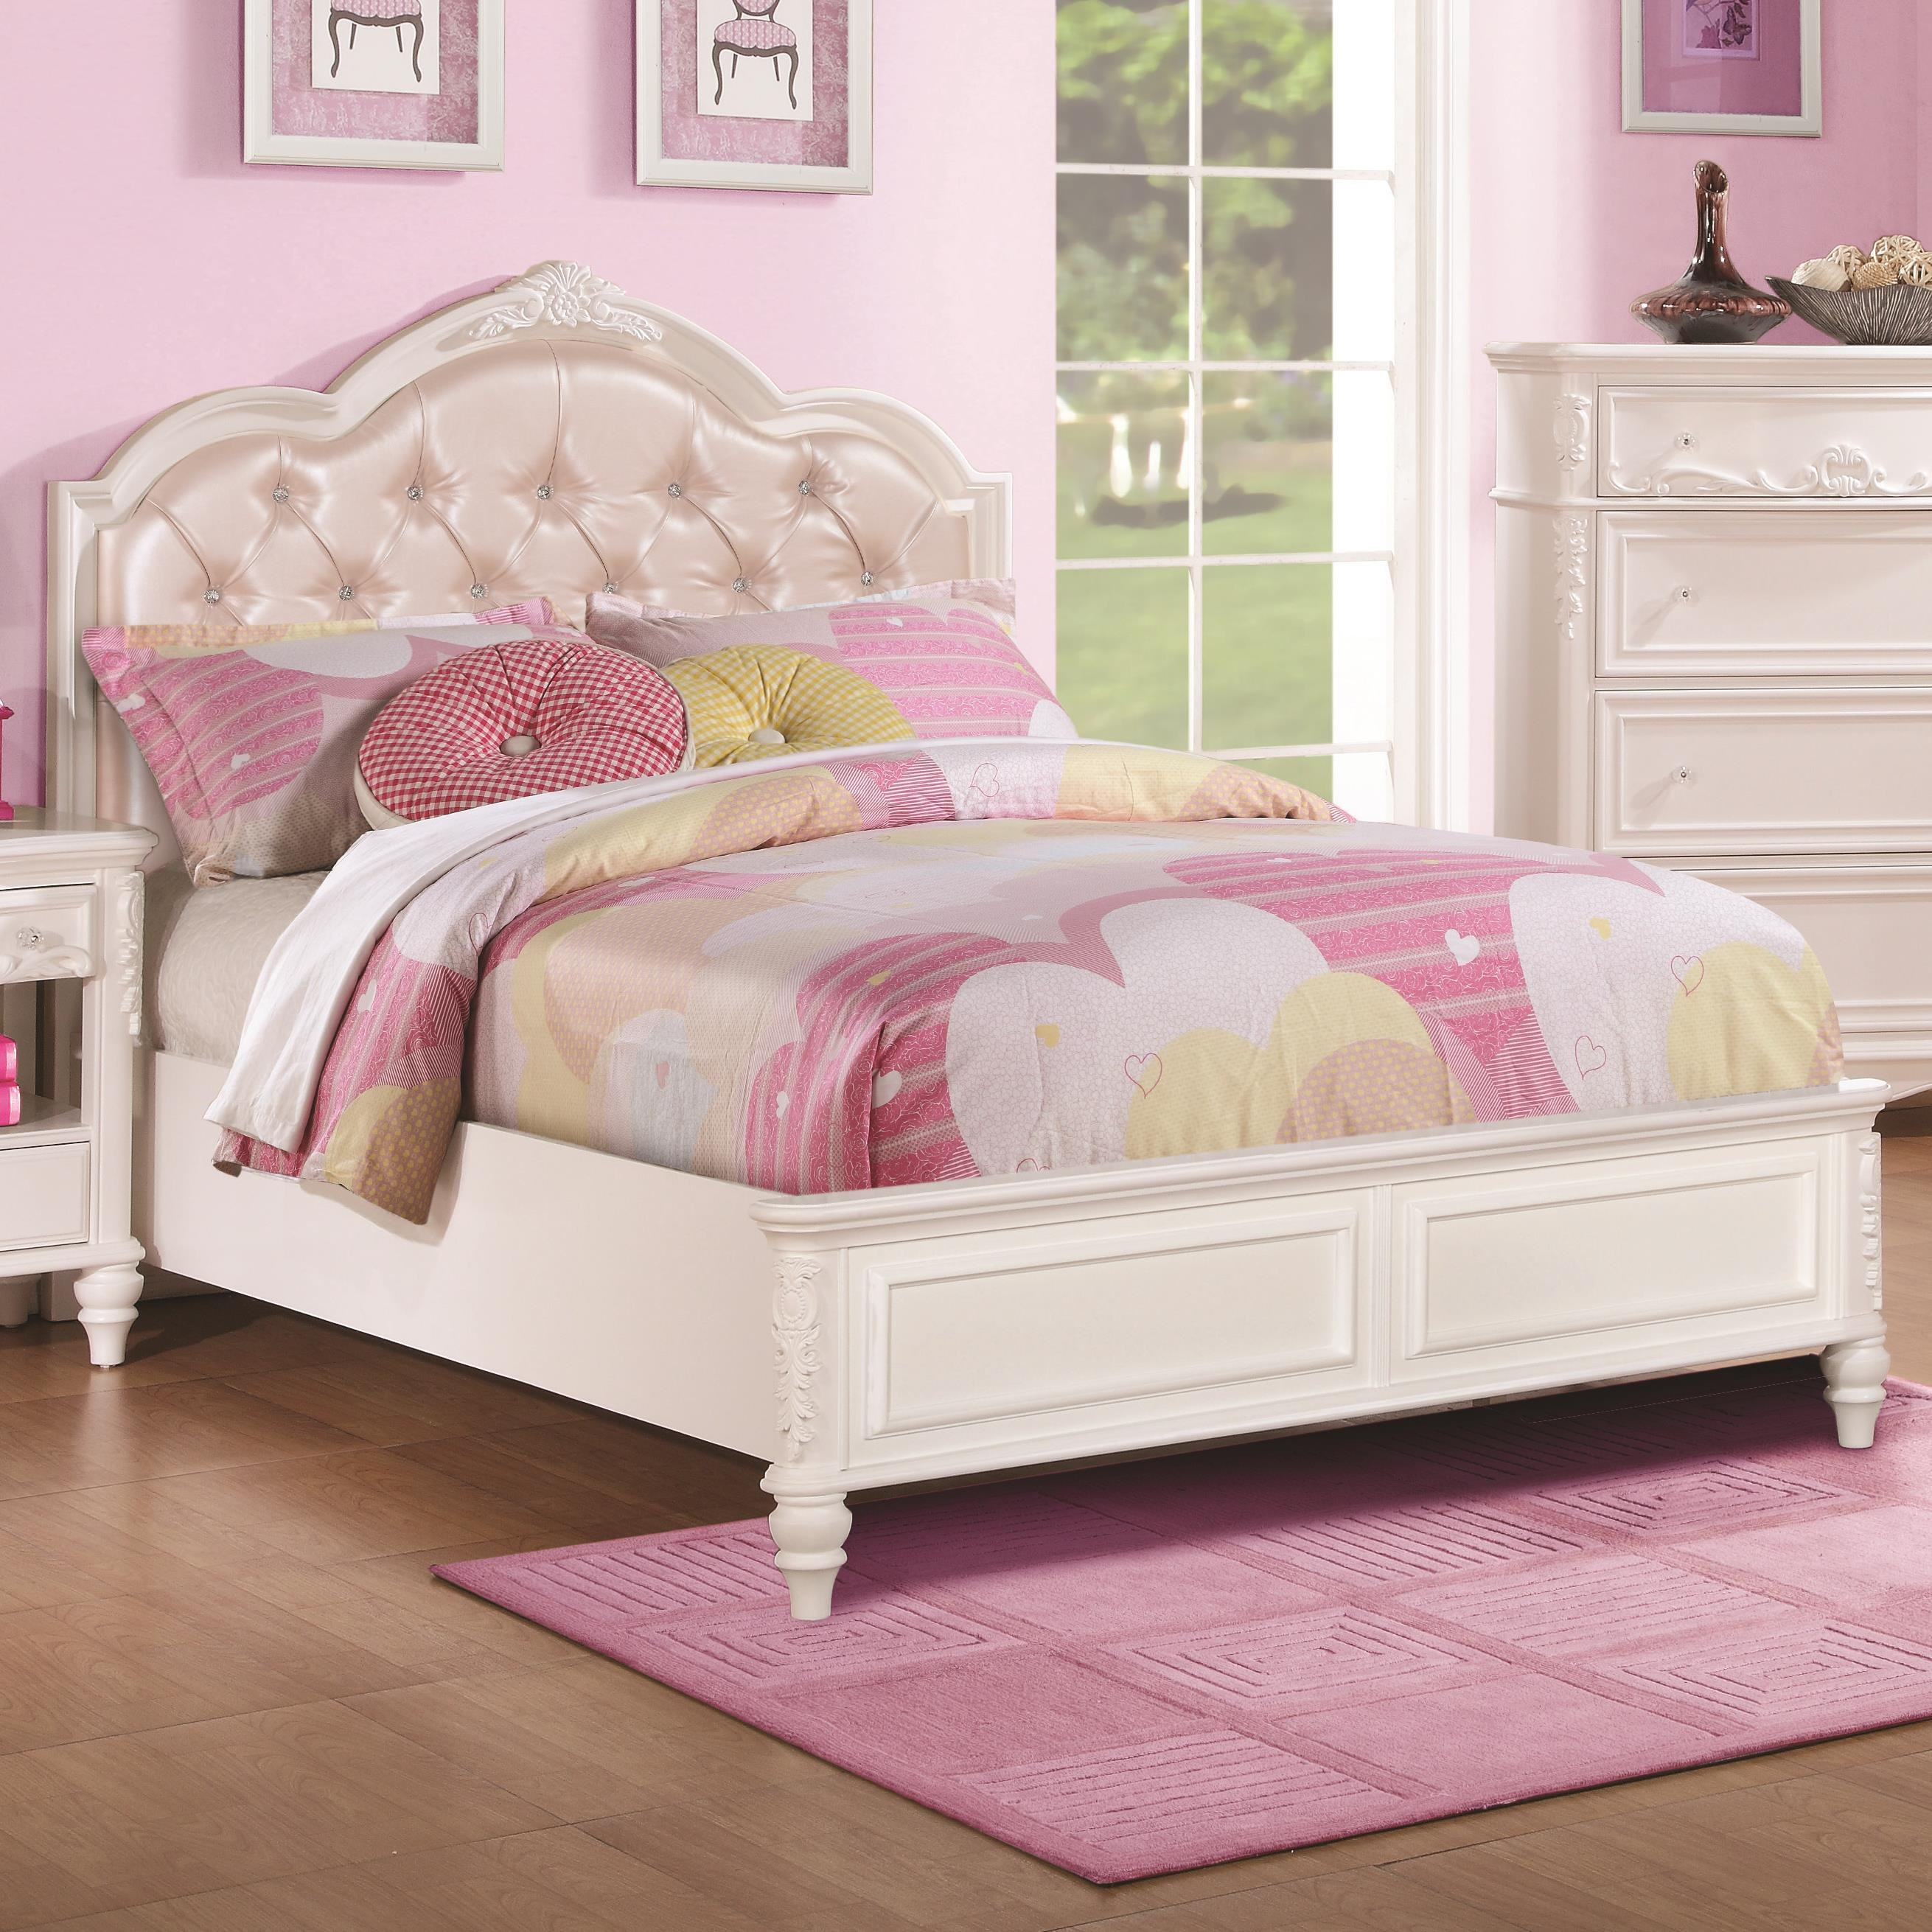 full size bed. Coaster Caroline Full Size Bed With Diamond Tufted Headboard - Fine Furniture R